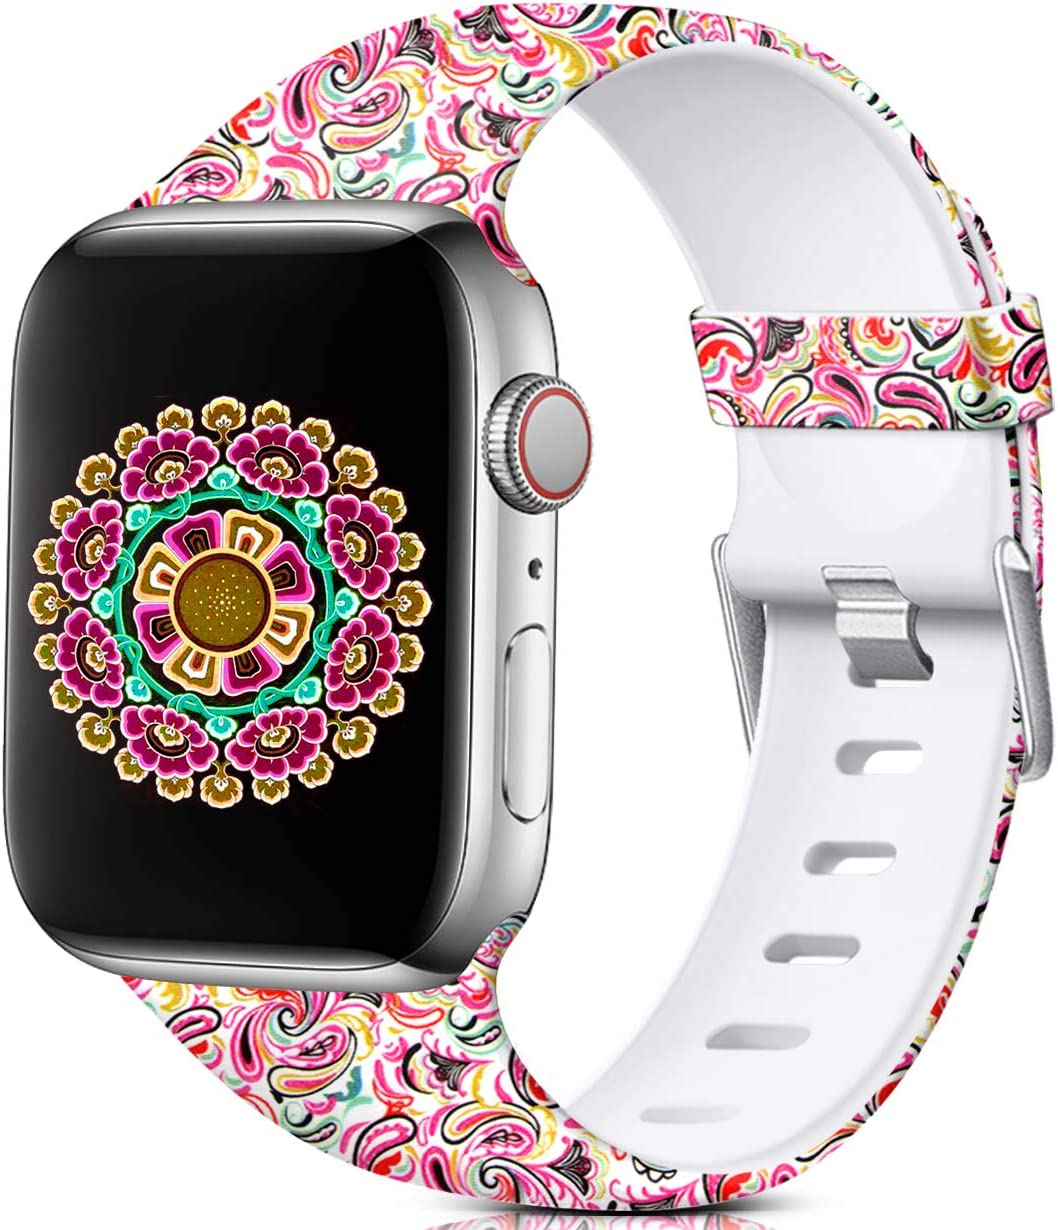 Nofeda Floral Bands Compatible with Apple Watch 40mm 38mm for Women Men, Soft Fadeless Pattern Printed Sport Band Replacement for iWatch Series 5,4,3,2,1, S/M, Paisley Pattern